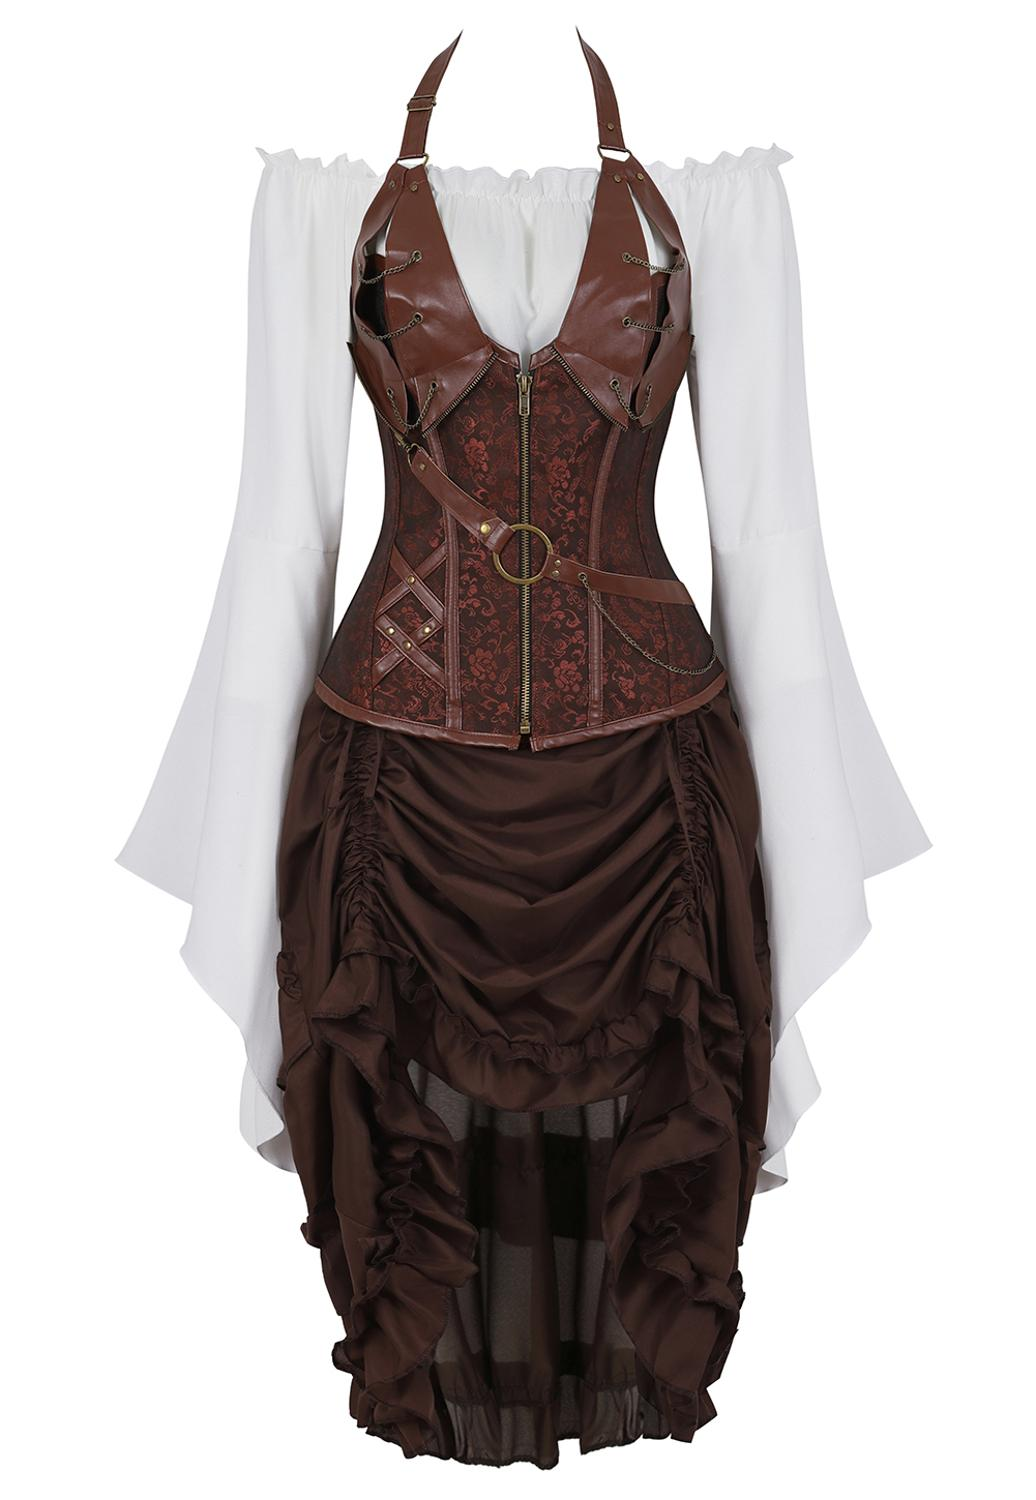 Grebrafan Halter Leather Corset with Pirate Skirt and Blouse 3 Piece Costume Steampunk